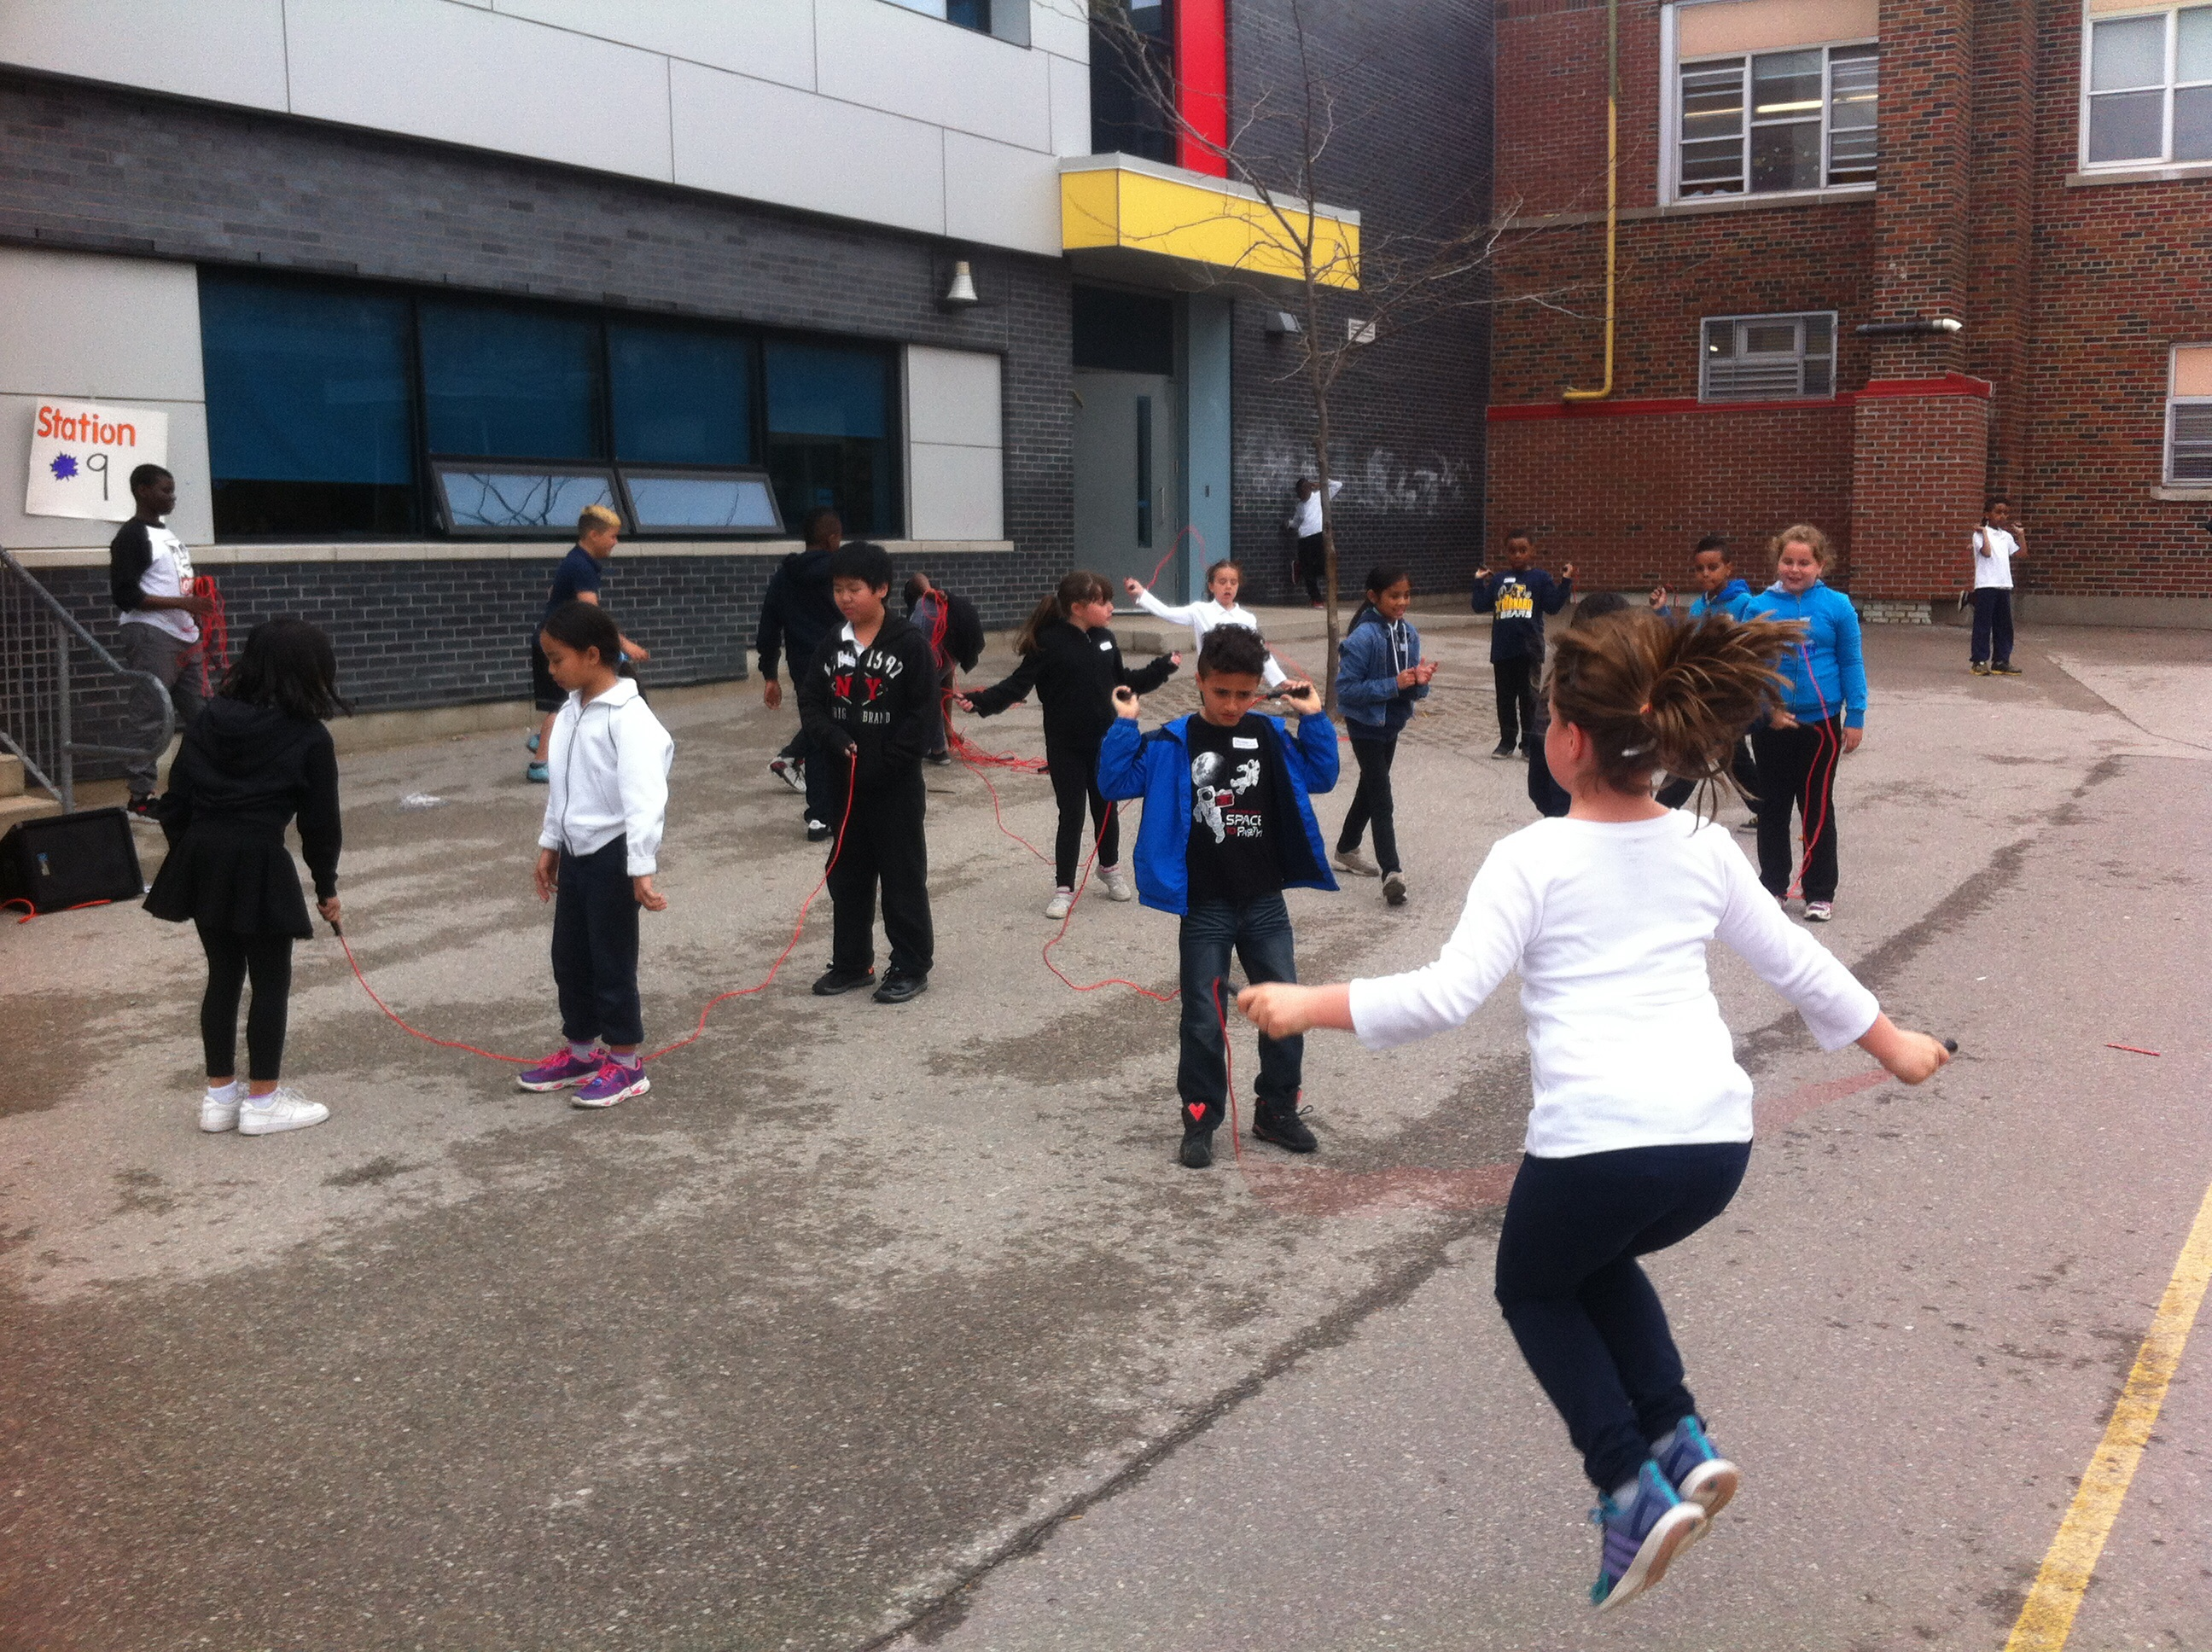 Jump rope for heart 4.jpg